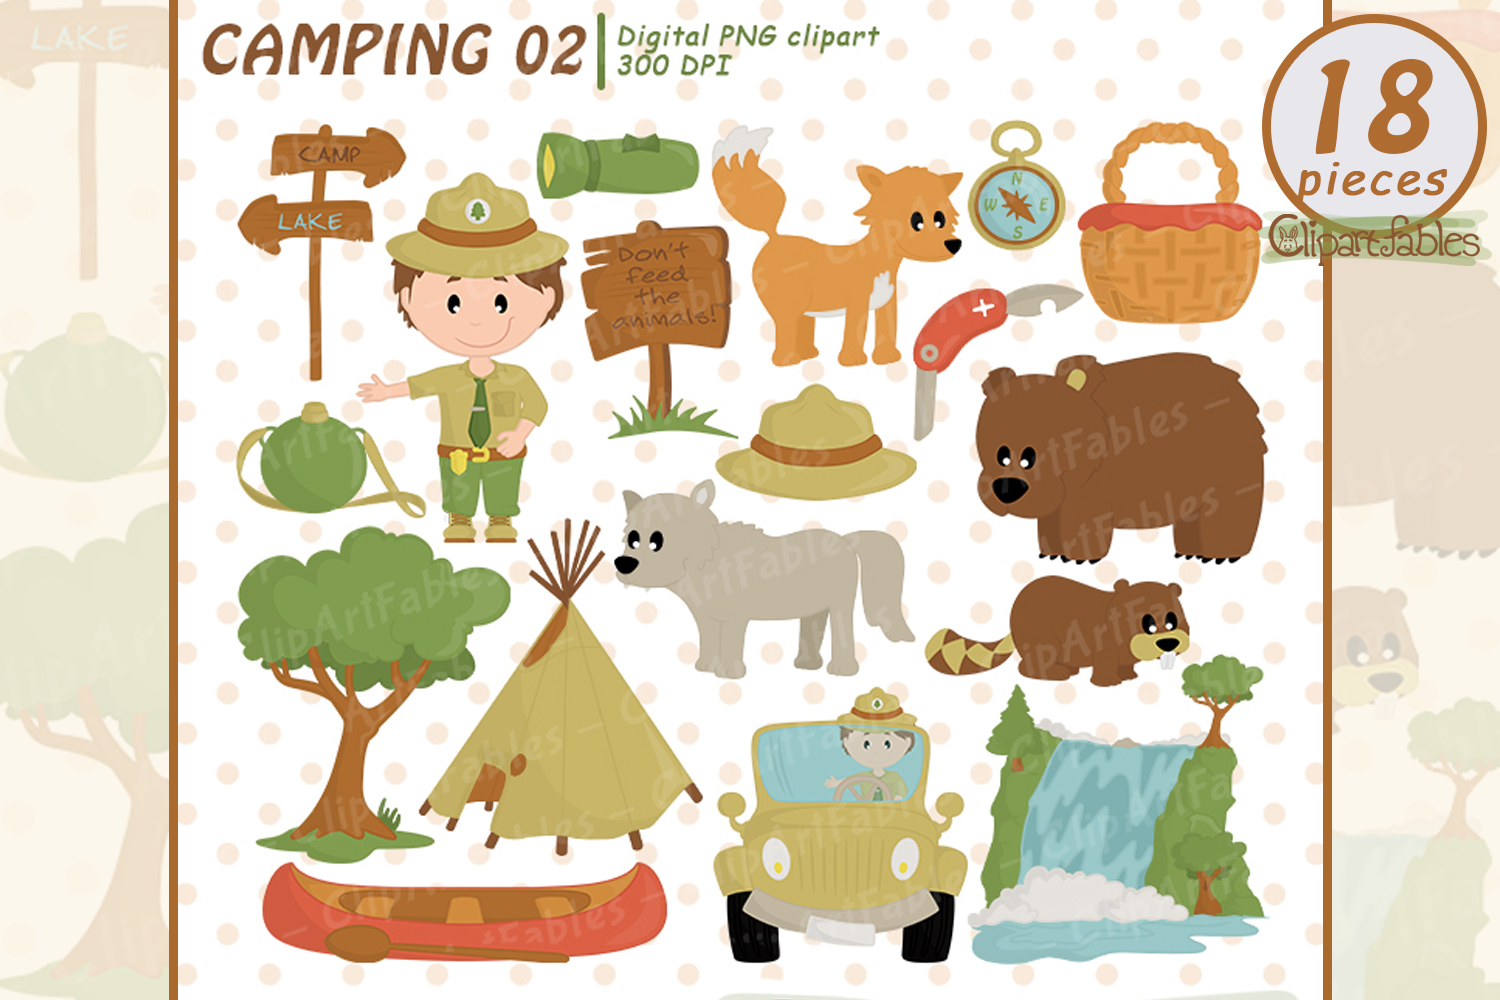 RANGER clipart, Wild life, Cute outdoor clipart, Camping art example image 1